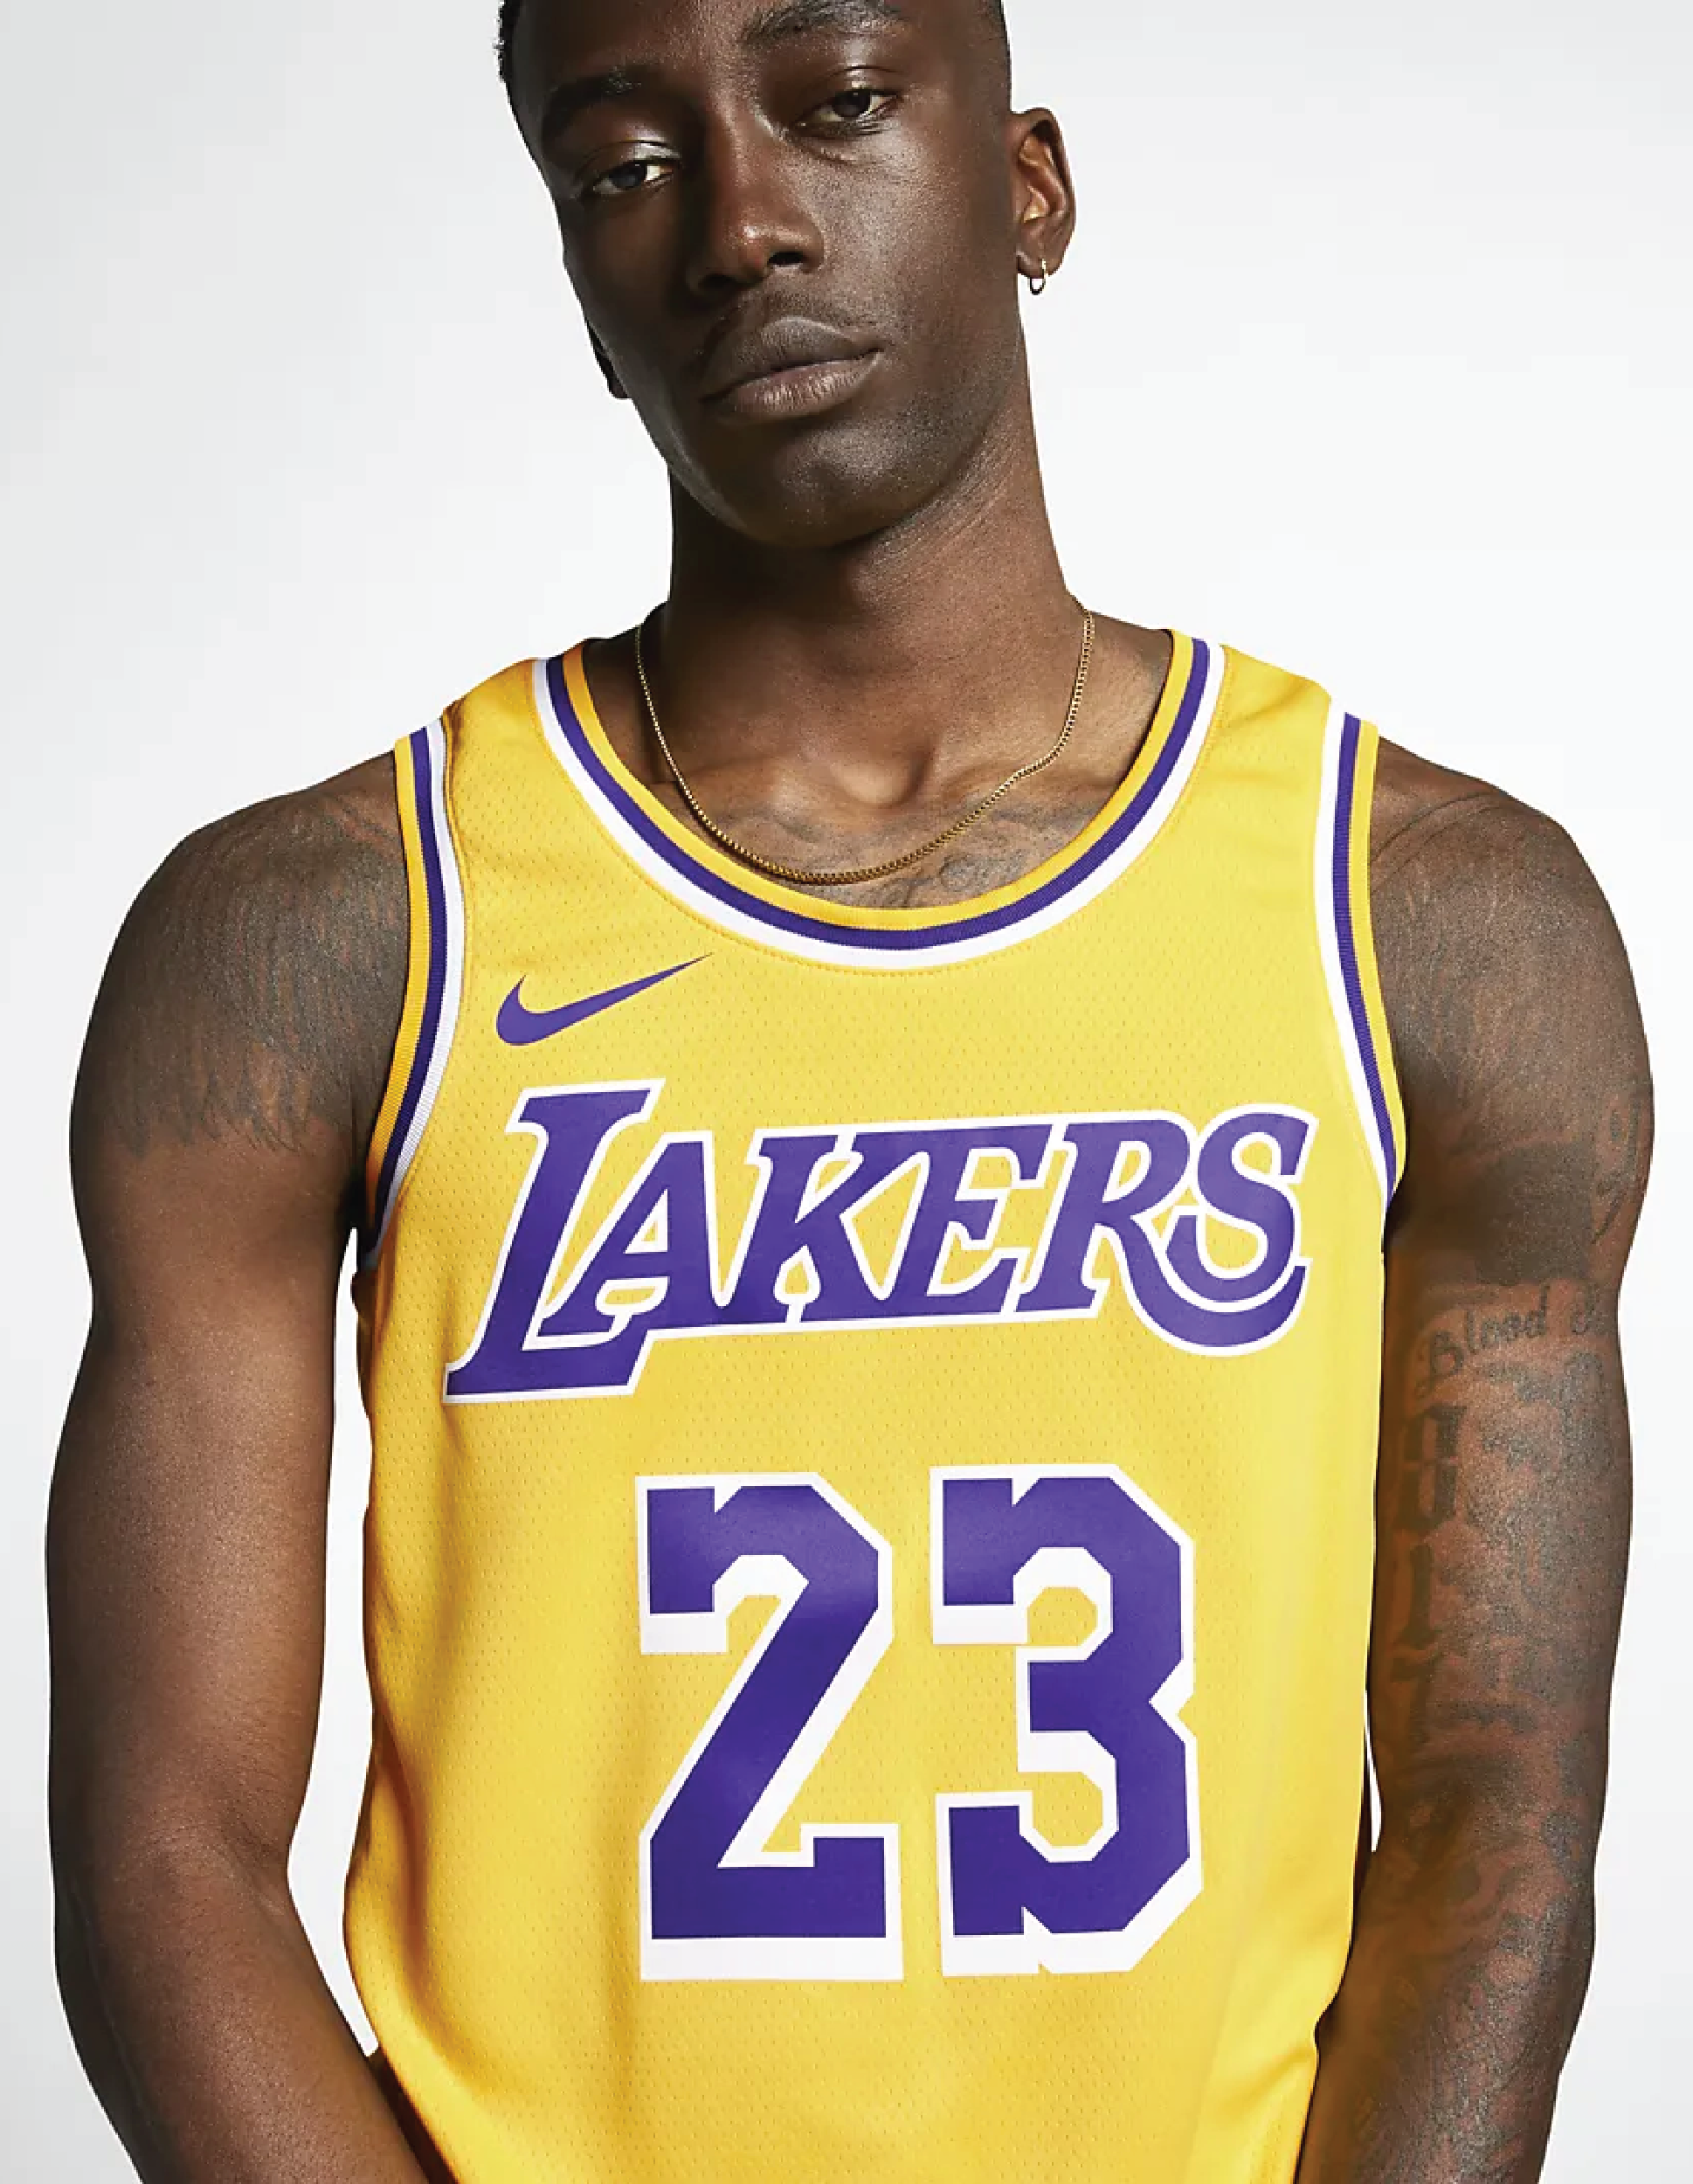 A model wearing the yellow and purple Lakers Jersey with the number 23 in the middle